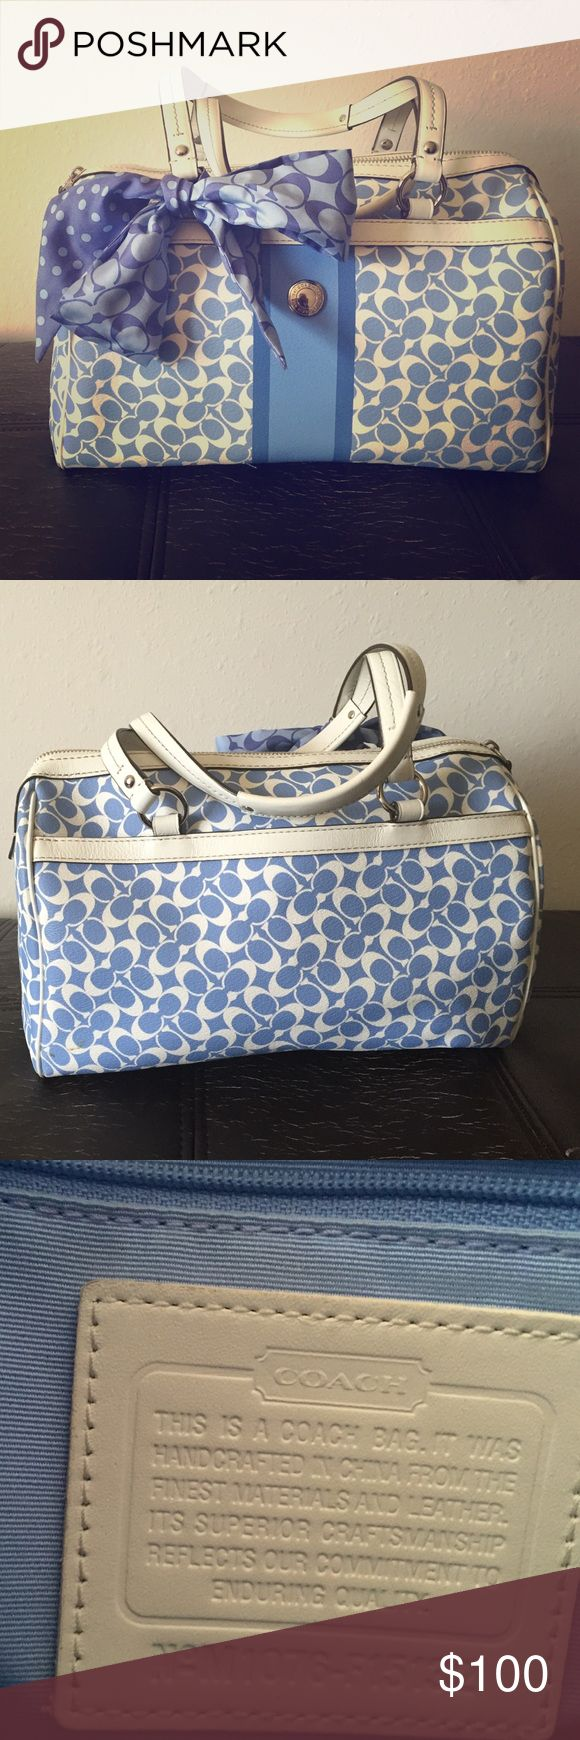 COACH satchel Barely used COACH satchel with scarf included but is detachable. Coach Bags Satchels